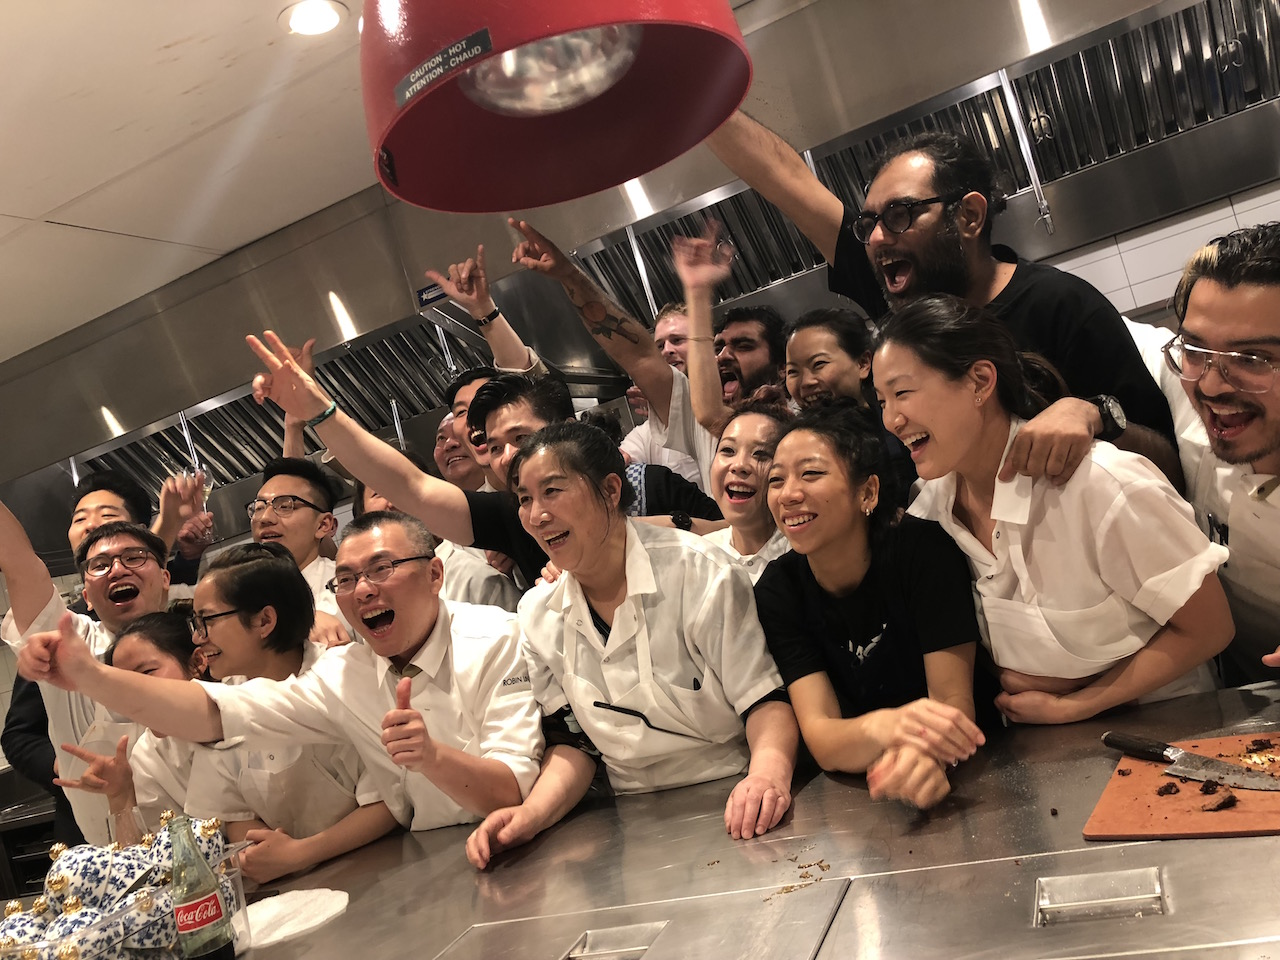 The Eight Tables and Gaggan teams in the kitchen